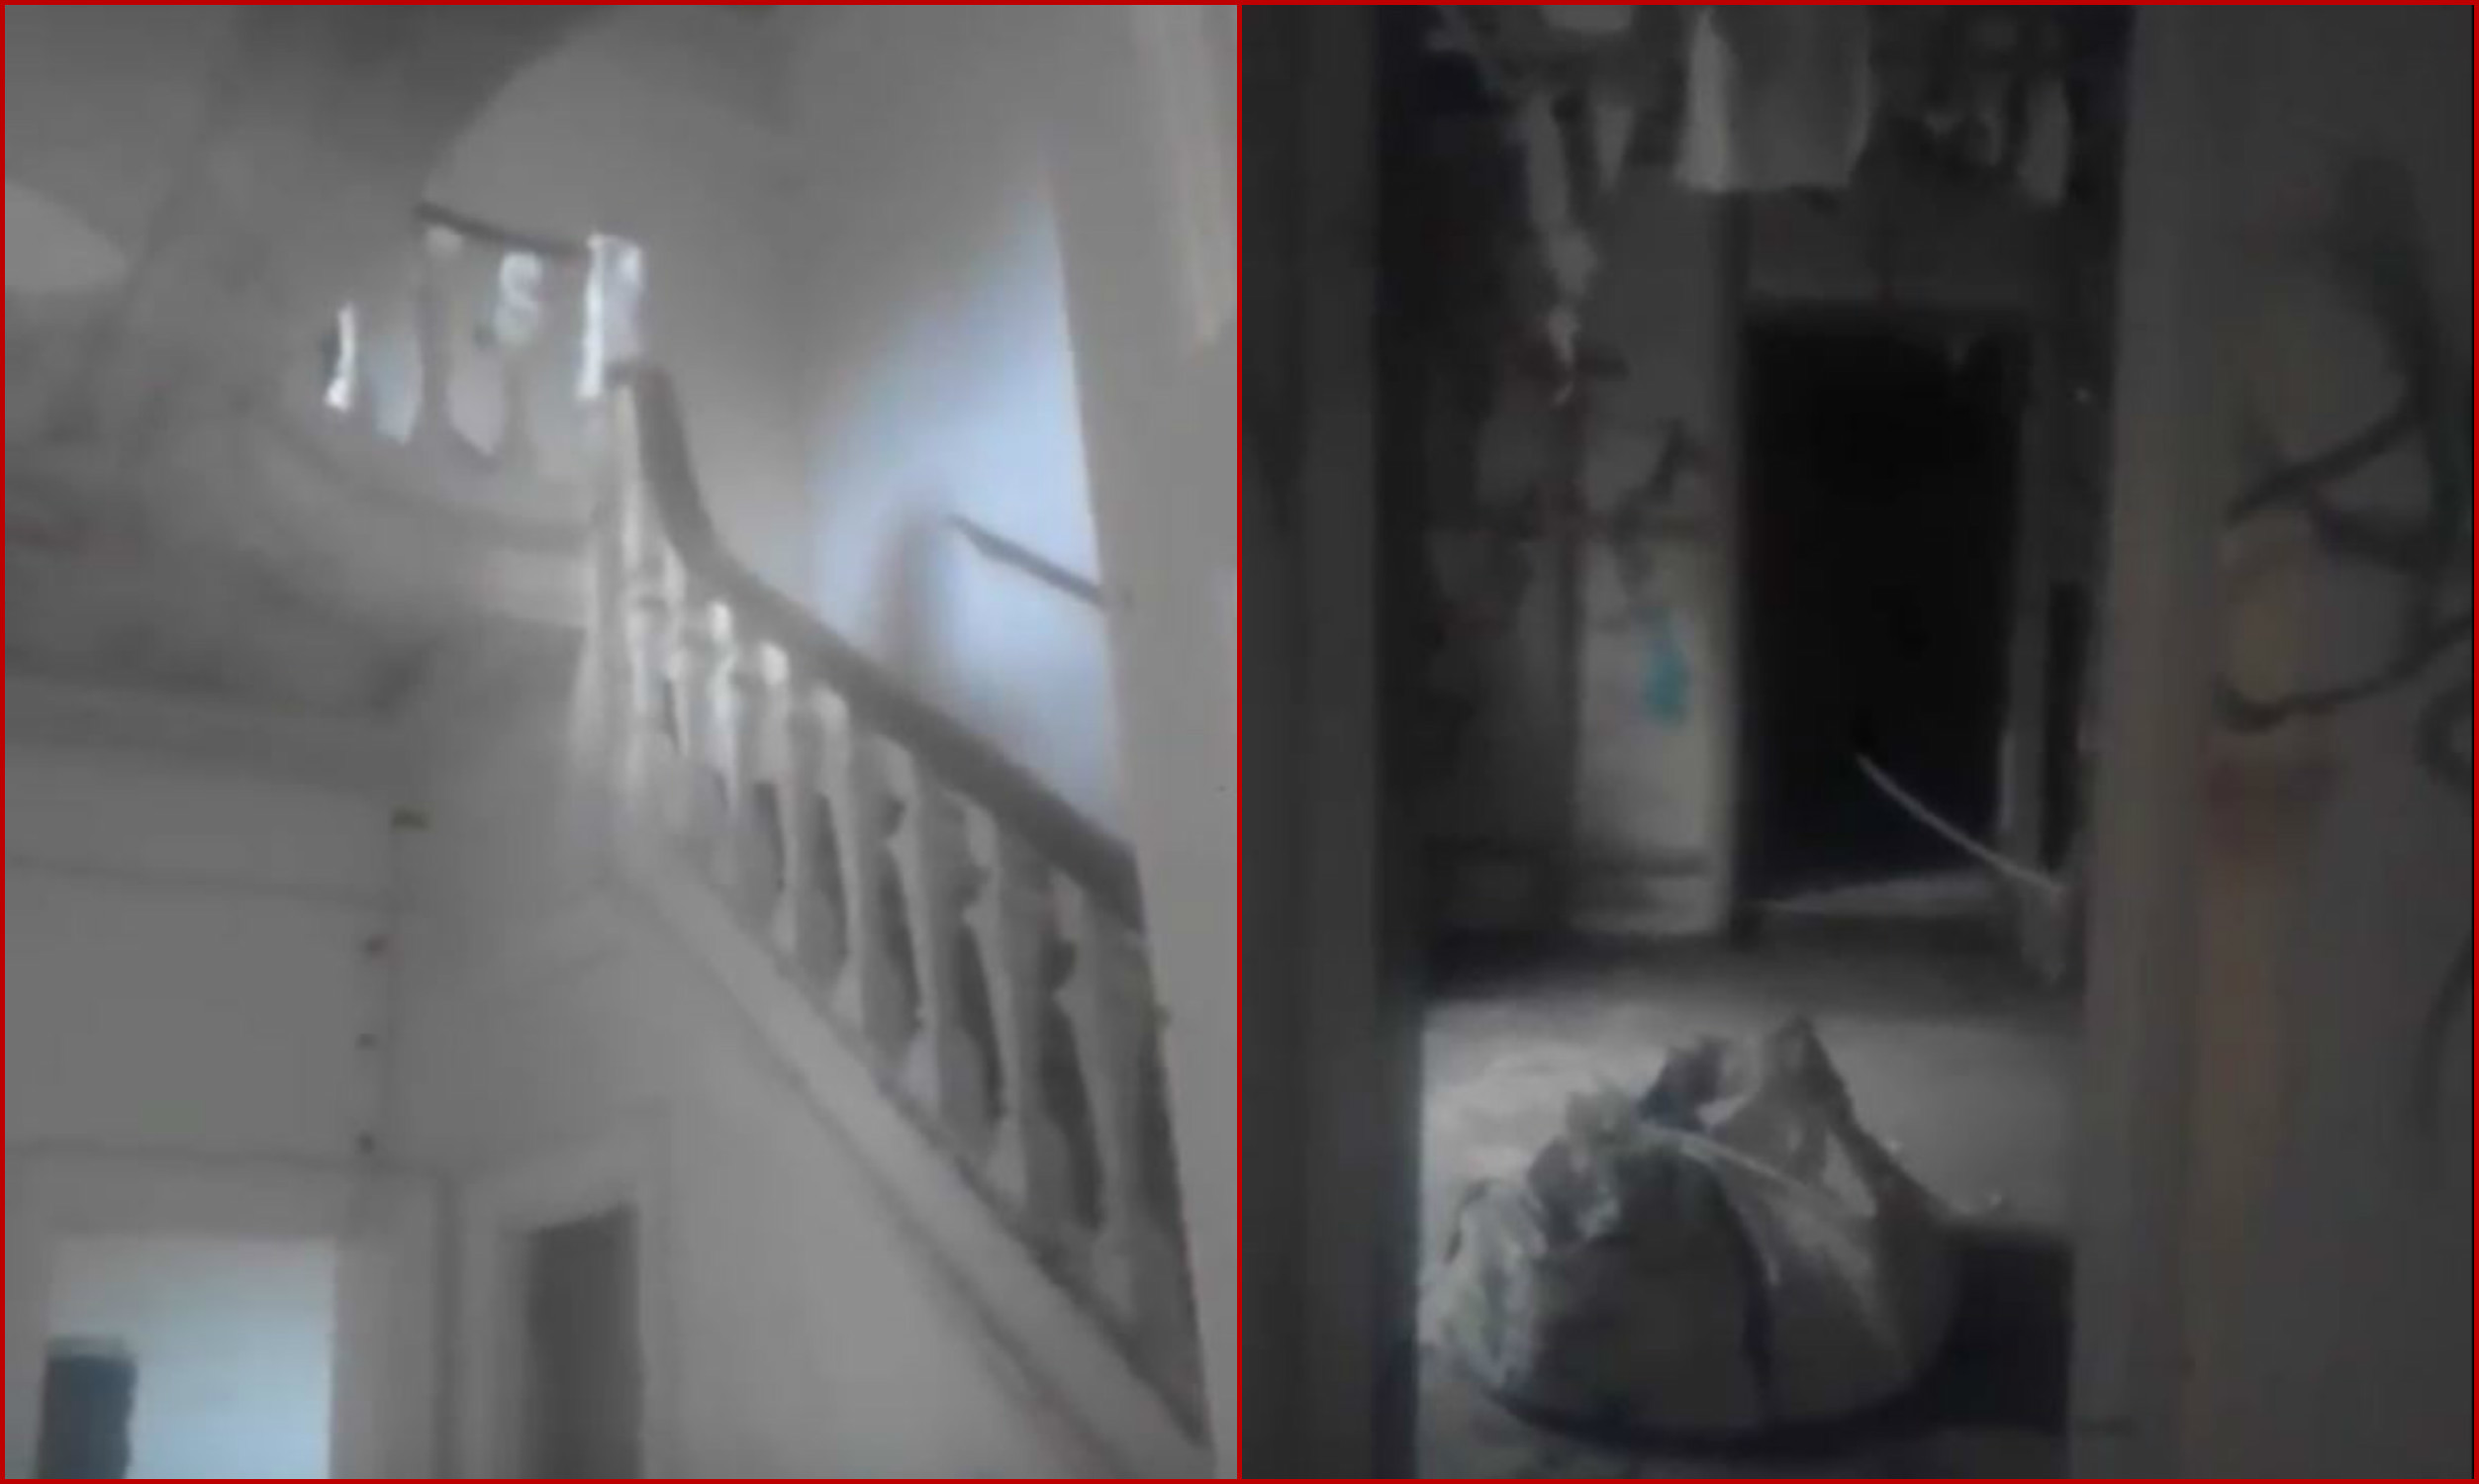 Stills from inside the notorious house.